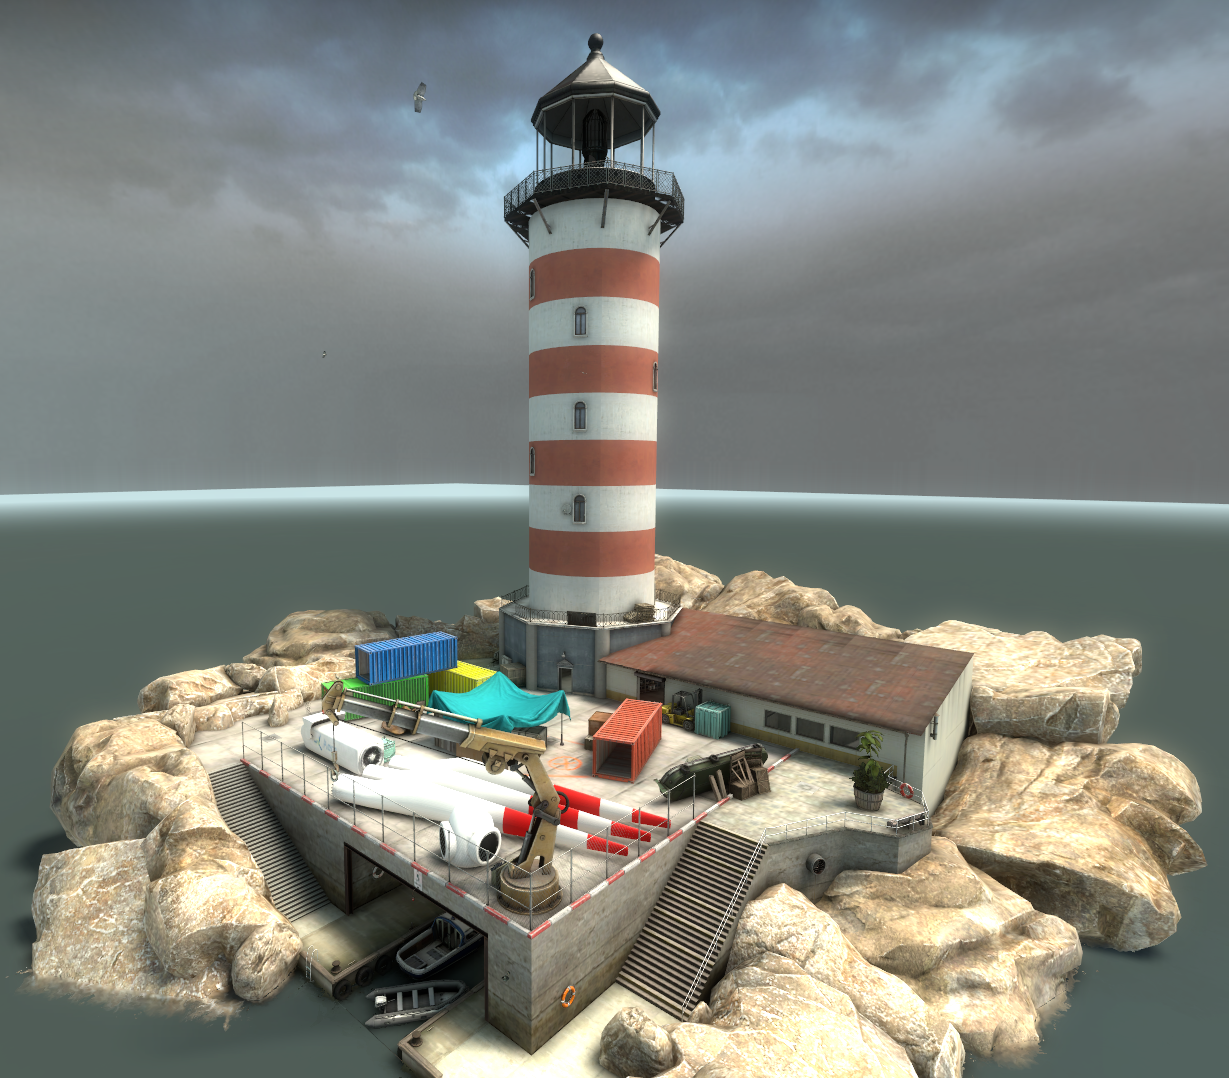 lighthouse.png.9879294cdfe5fac3e81fc44bd998dc04.png